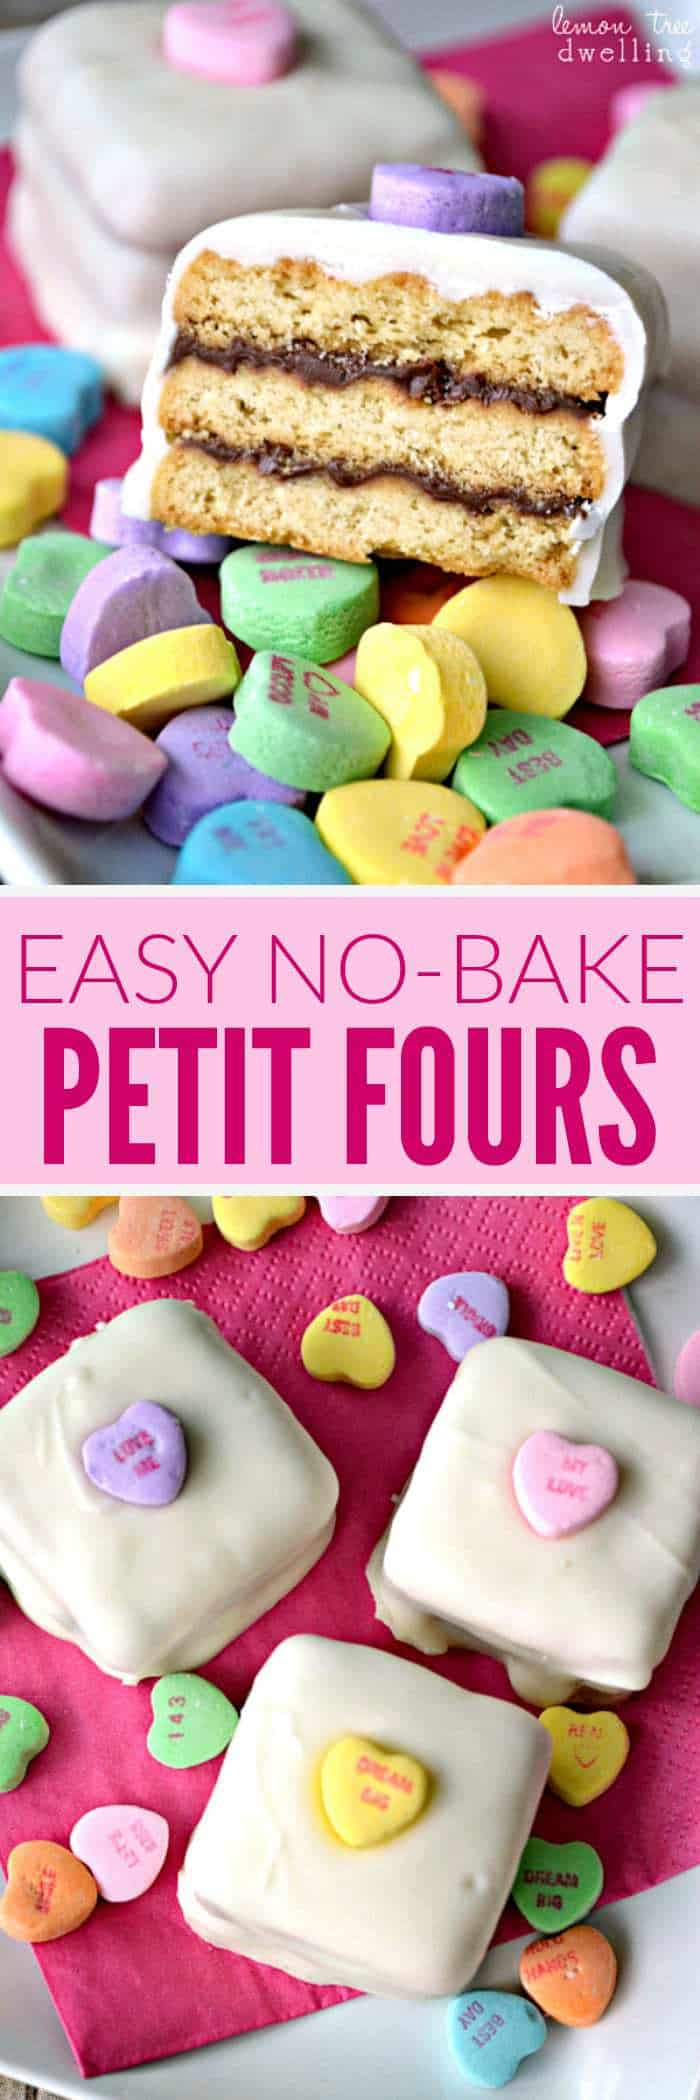 Easy No-Bake Petit Fours made with shortbread cookies, Nutella, and Vanilla Candiquik. An adorably delicious Valentine's Day treat!